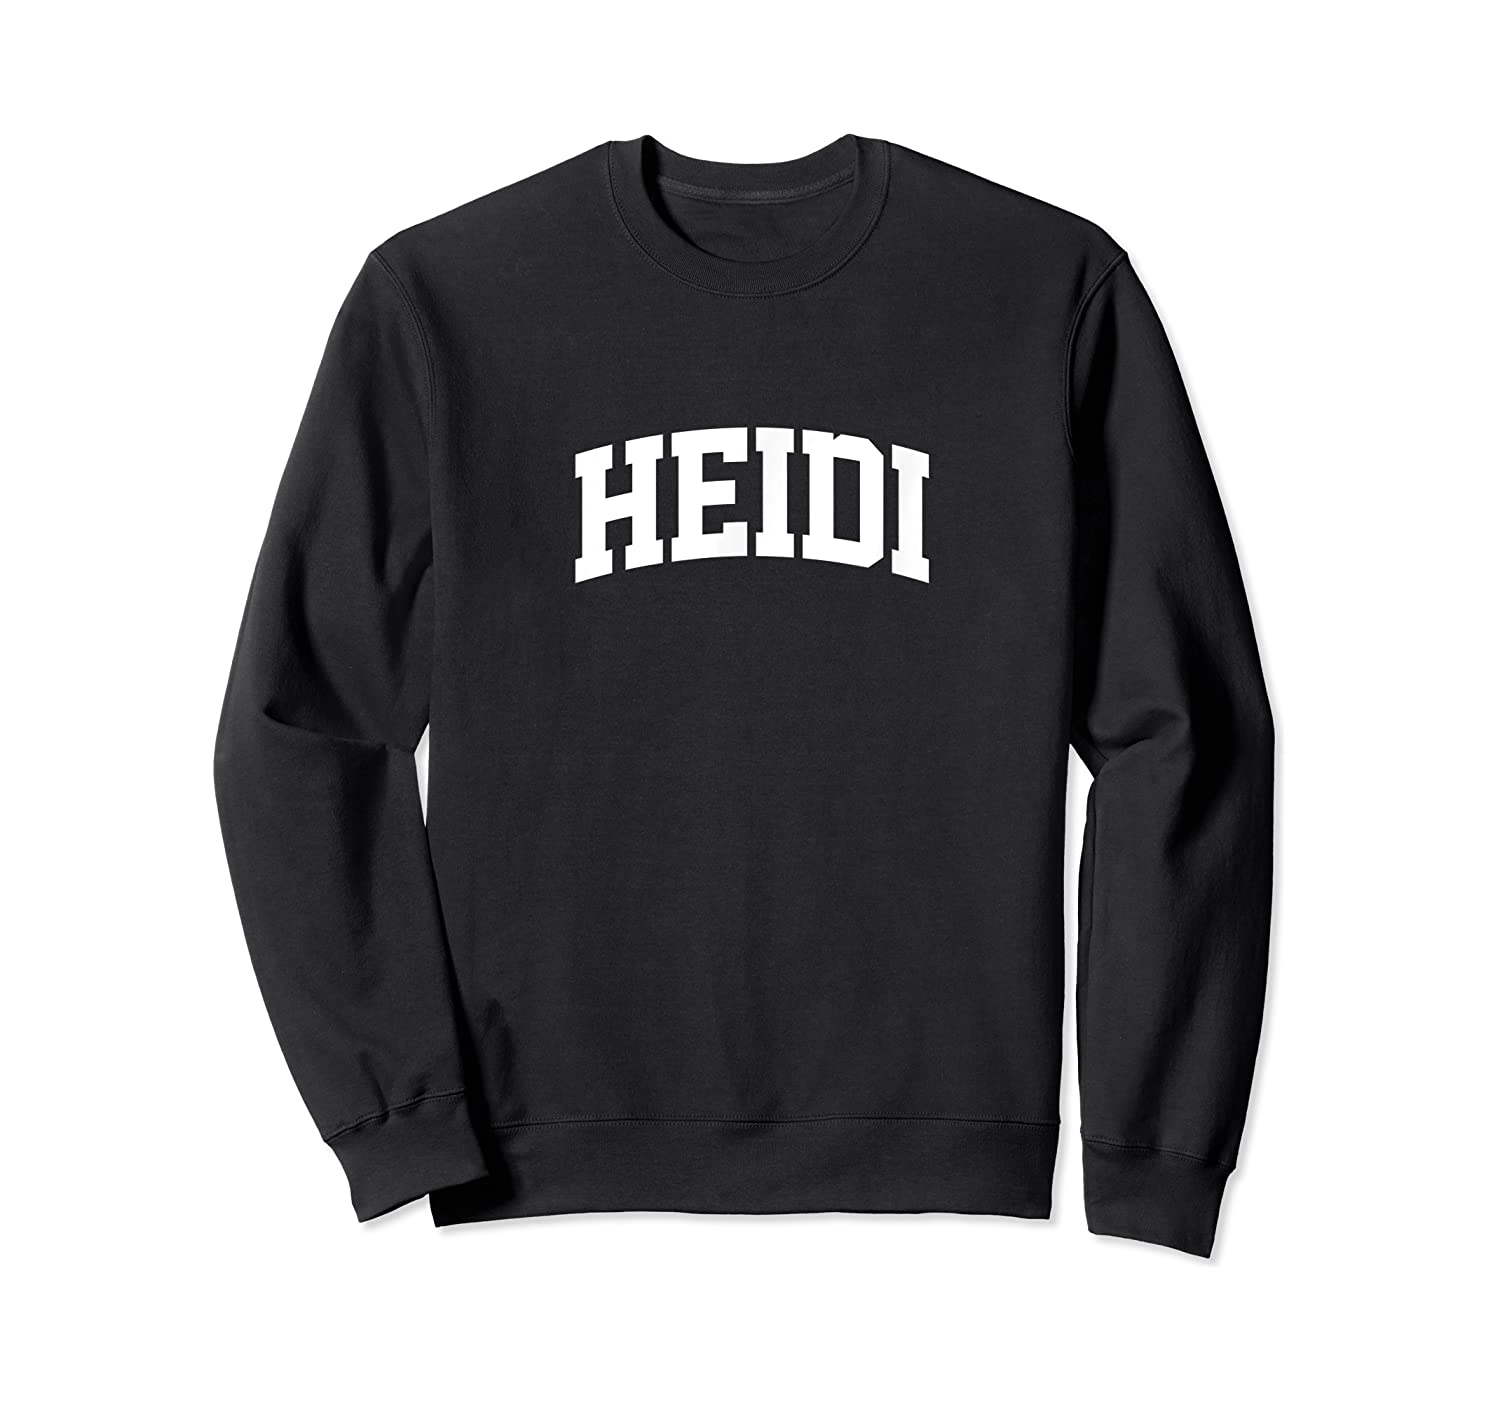 Heidi Name Last Family First College Arch T-shirt Crewneck Sweater